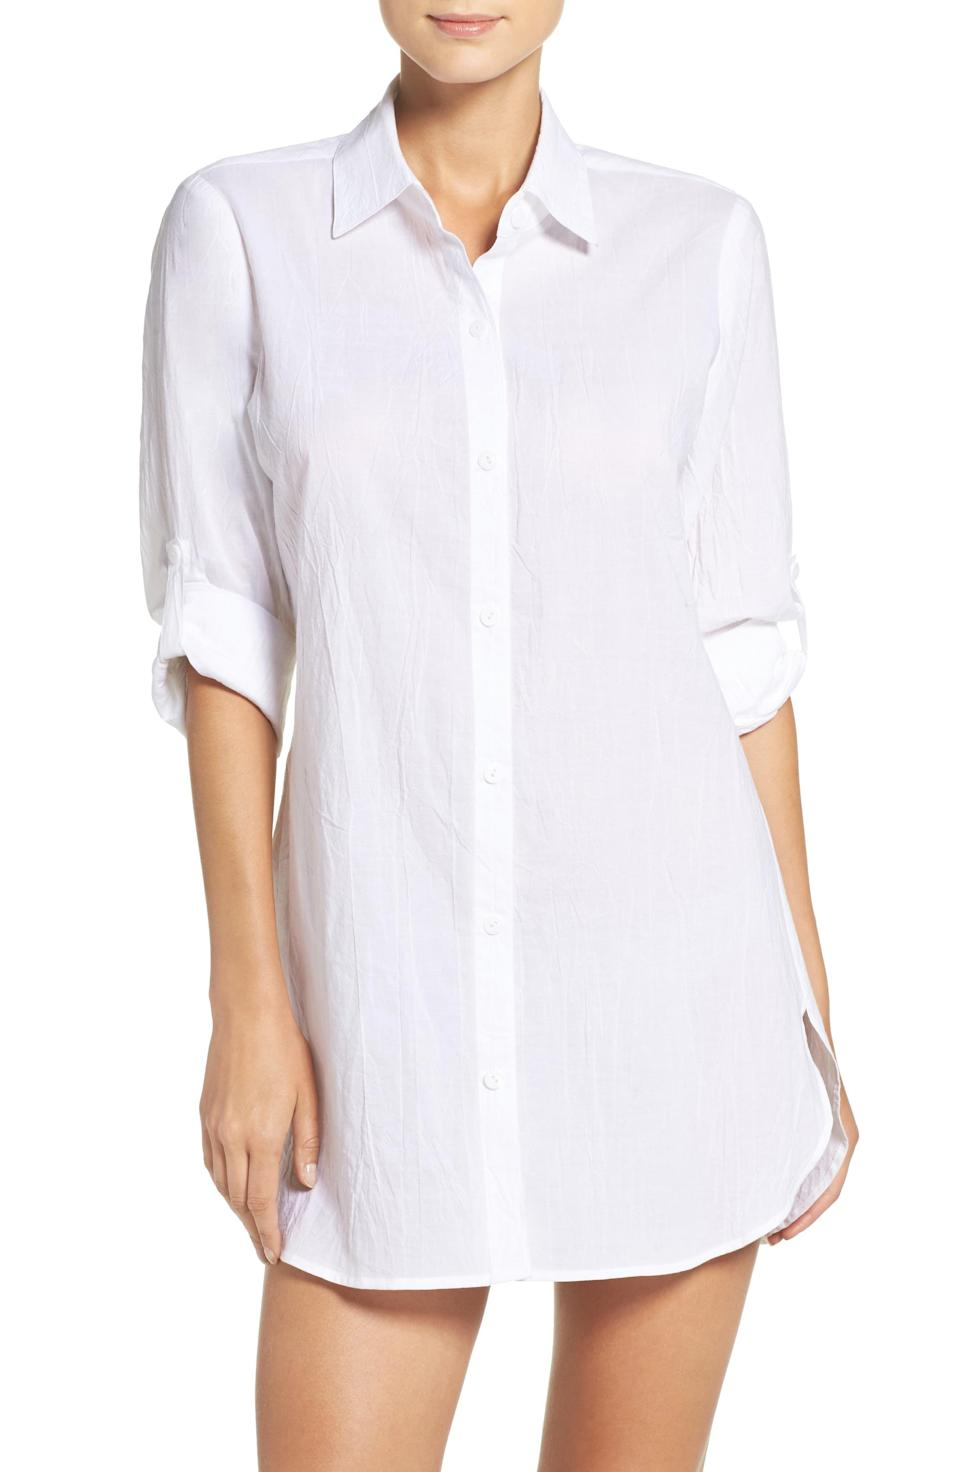 """<p><strong>Tommy Bahama</strong></p><p>nordstrom.com</p><p><strong>$68.00</strong></p><p><a href=""""https://go.redirectingat.com?id=74968X1596630&url=https%3A%2F%2Fshop.nordstrom.com%2Fs%2Ftommy-bahama-boyfriend-shirt-cover-up%2F3129996&sref=https%3A%2F%2Fwww.townandcountrymag.com%2Fstyle%2Ffashion-trends%2Fg28904847%2Fbest-white-button-down-shirts%2F"""" rel=""""nofollow noopener"""" target=""""_blank"""" data-ylk=""""slk:Shop Now"""" class=""""link rapid-noclick-resp"""">Shop Now</a></p><p>This long, breezy cotton button down is just as chic as a cover up at the beach as it is for an extra boost of unfussy sophistication with tights and boots. </p>"""